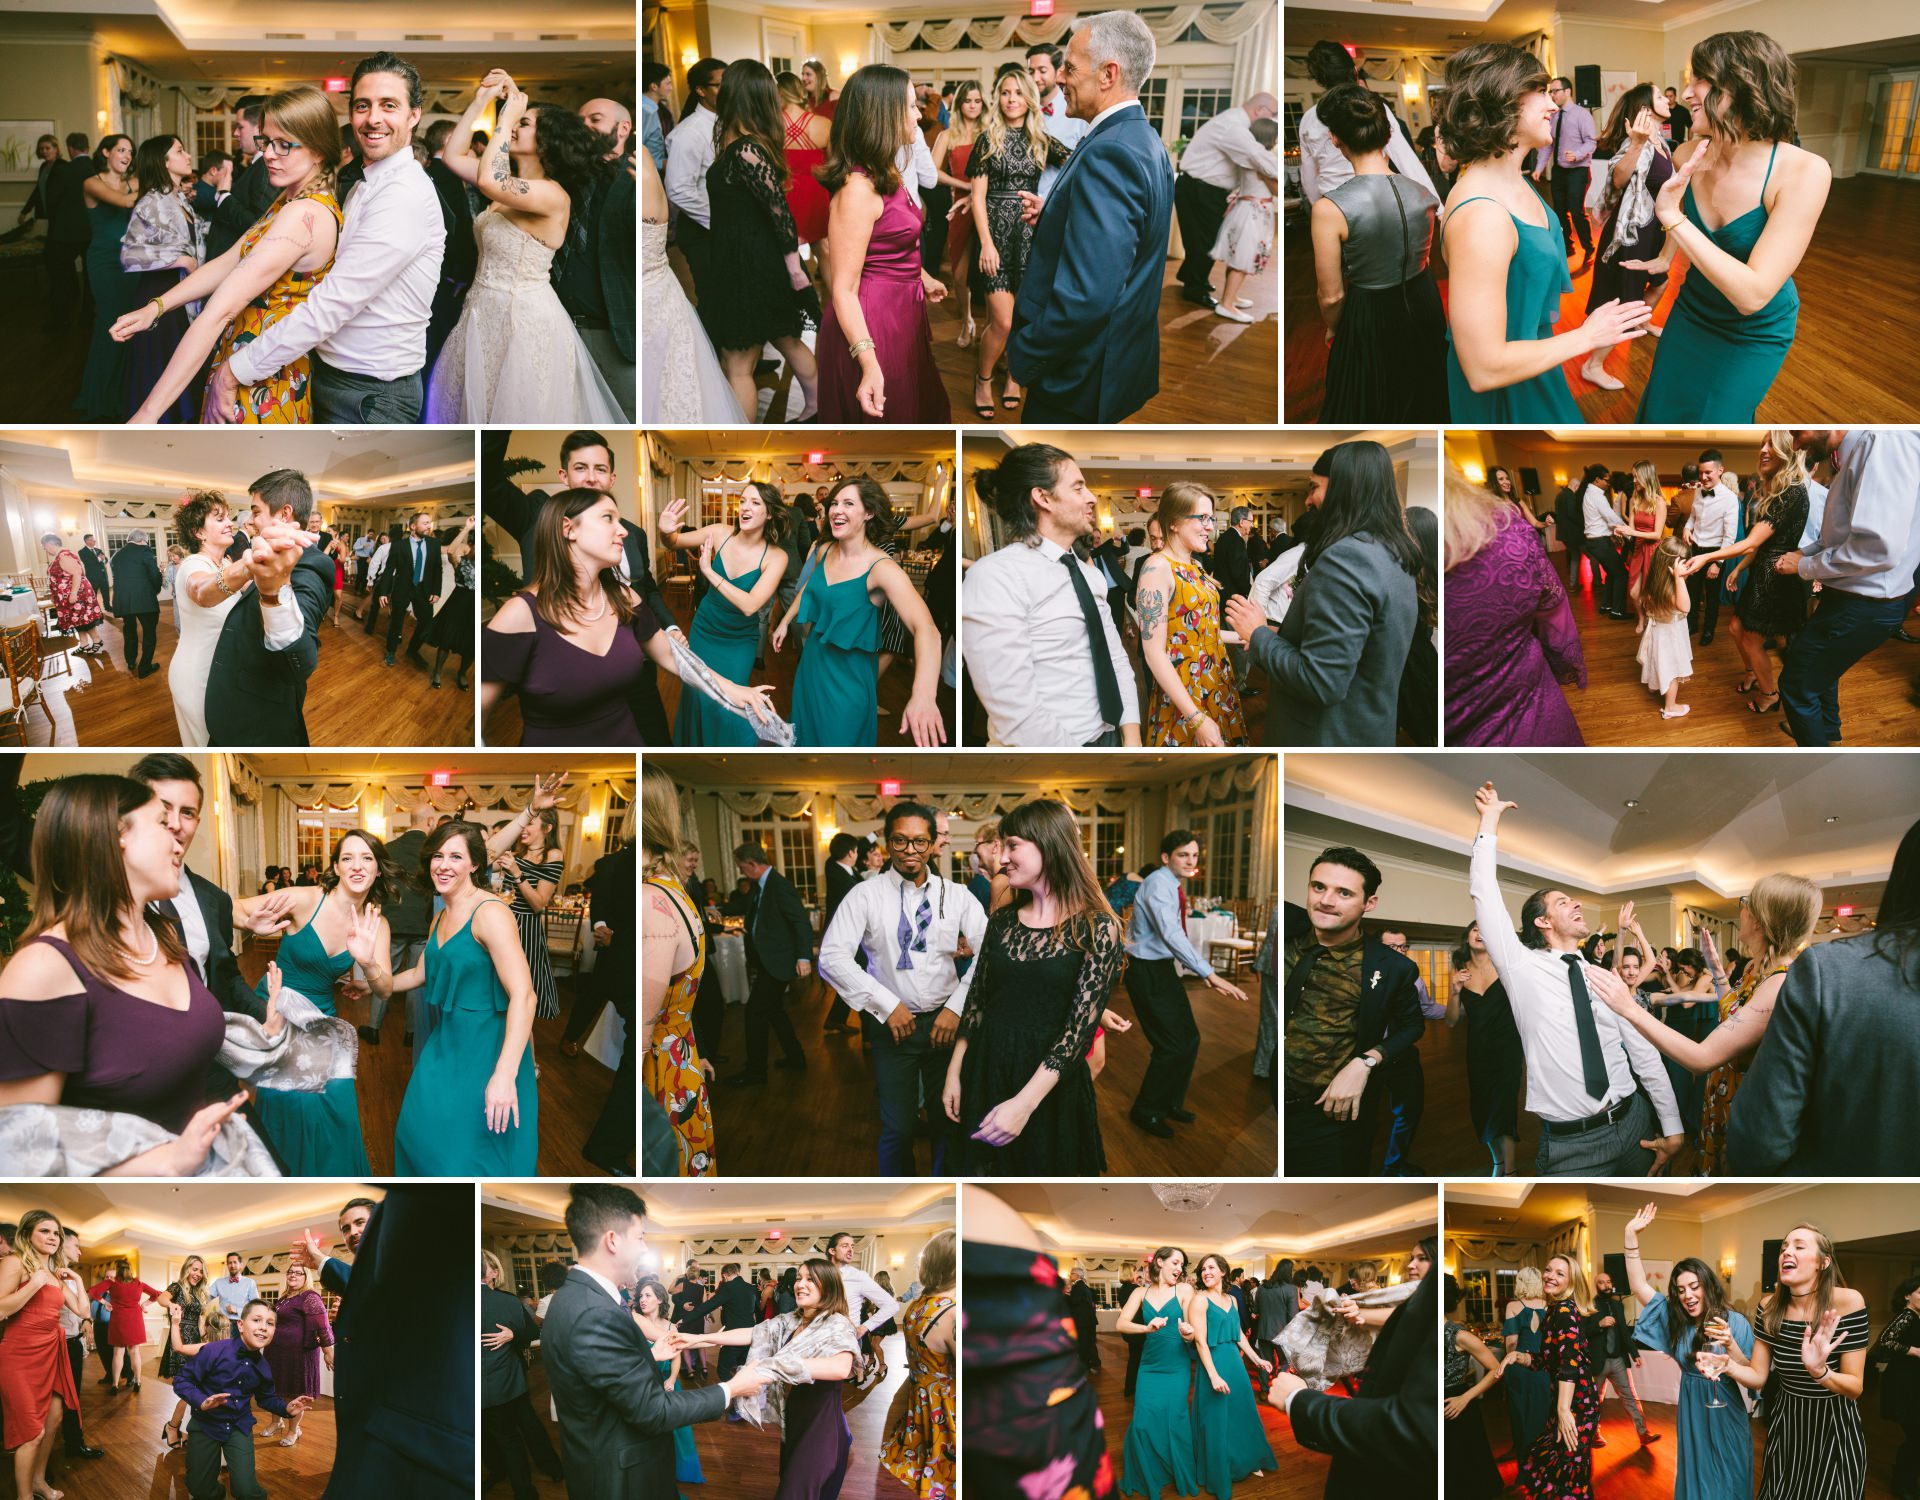 Wedding at the Glidden House in Cleveland 2 41.jpg